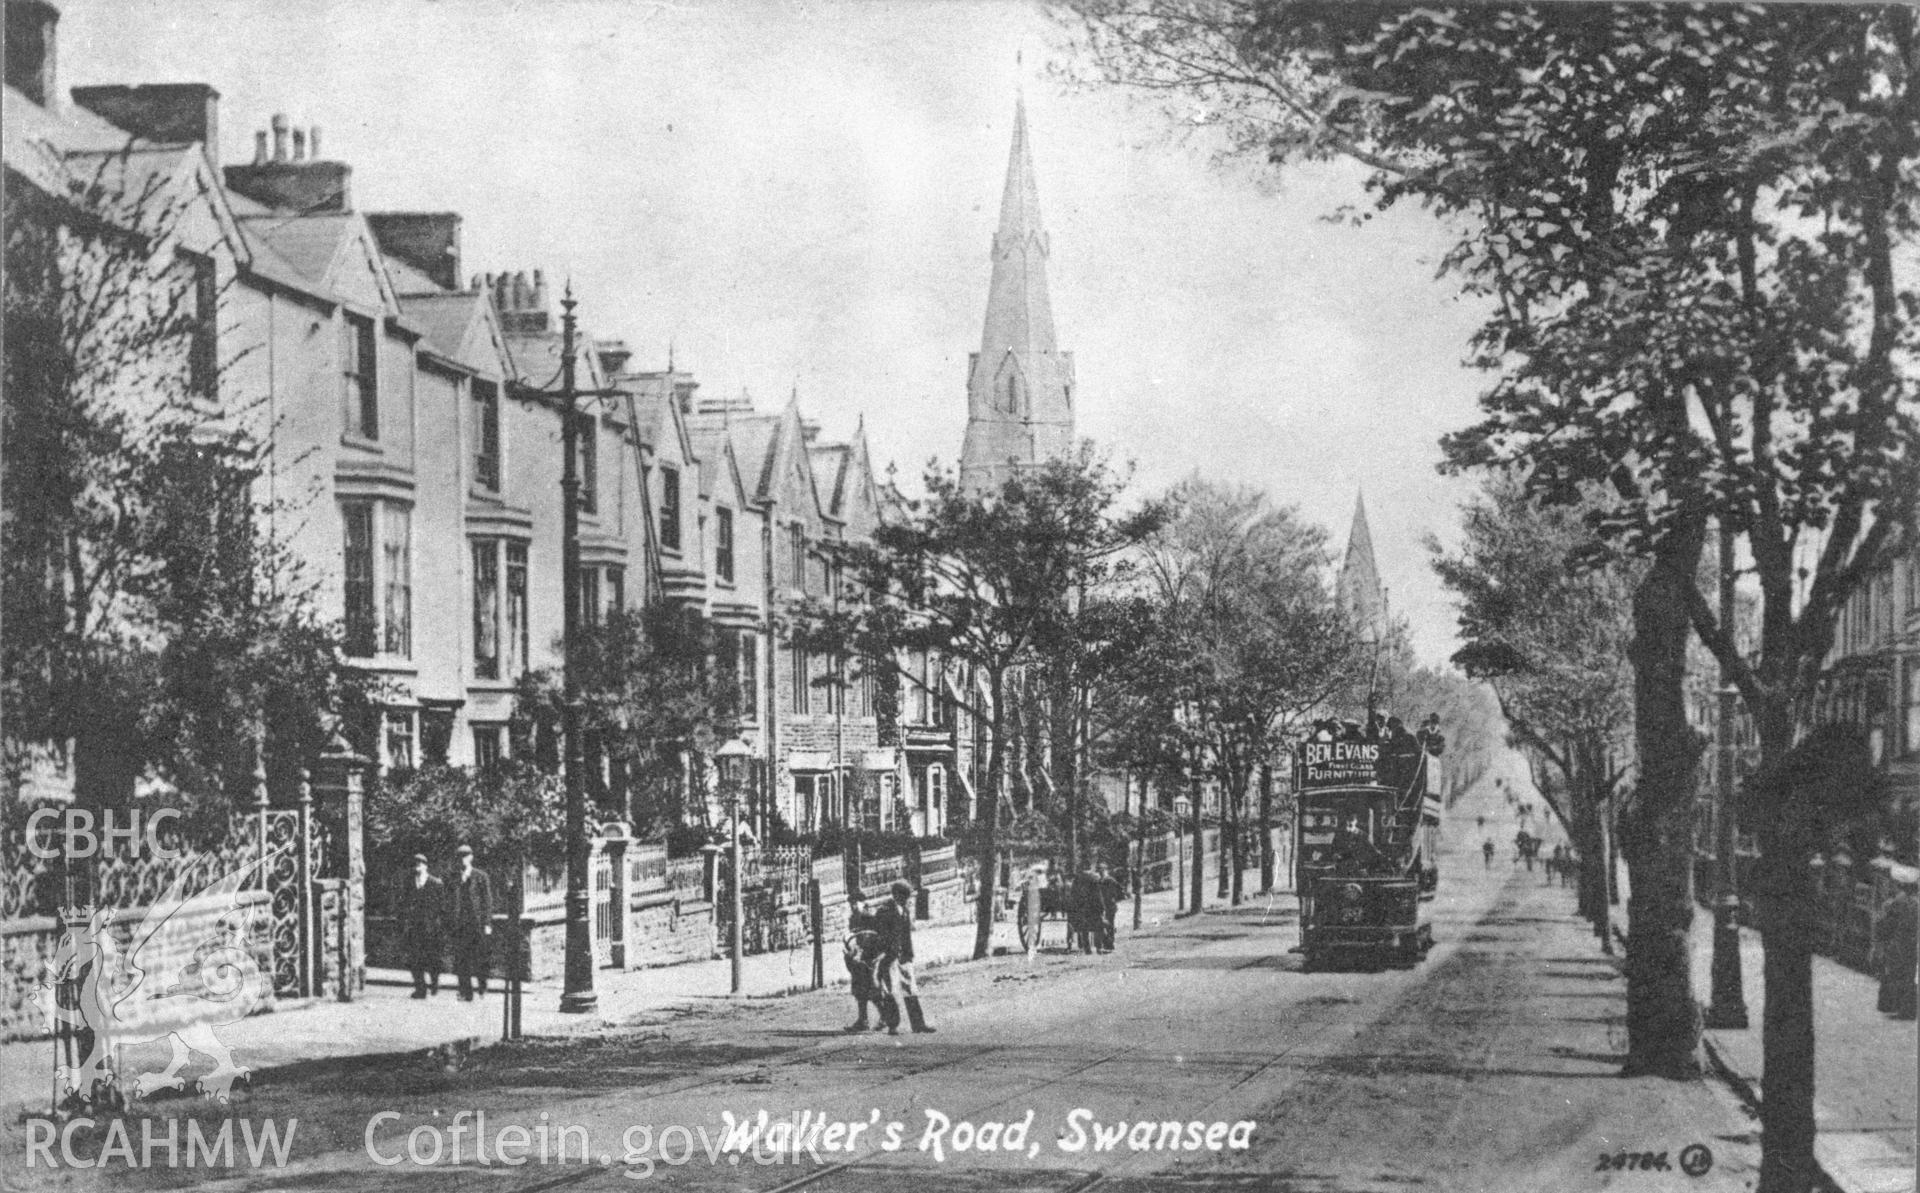 Copy of an early black and white photograph showing Walter Road, Swansea.